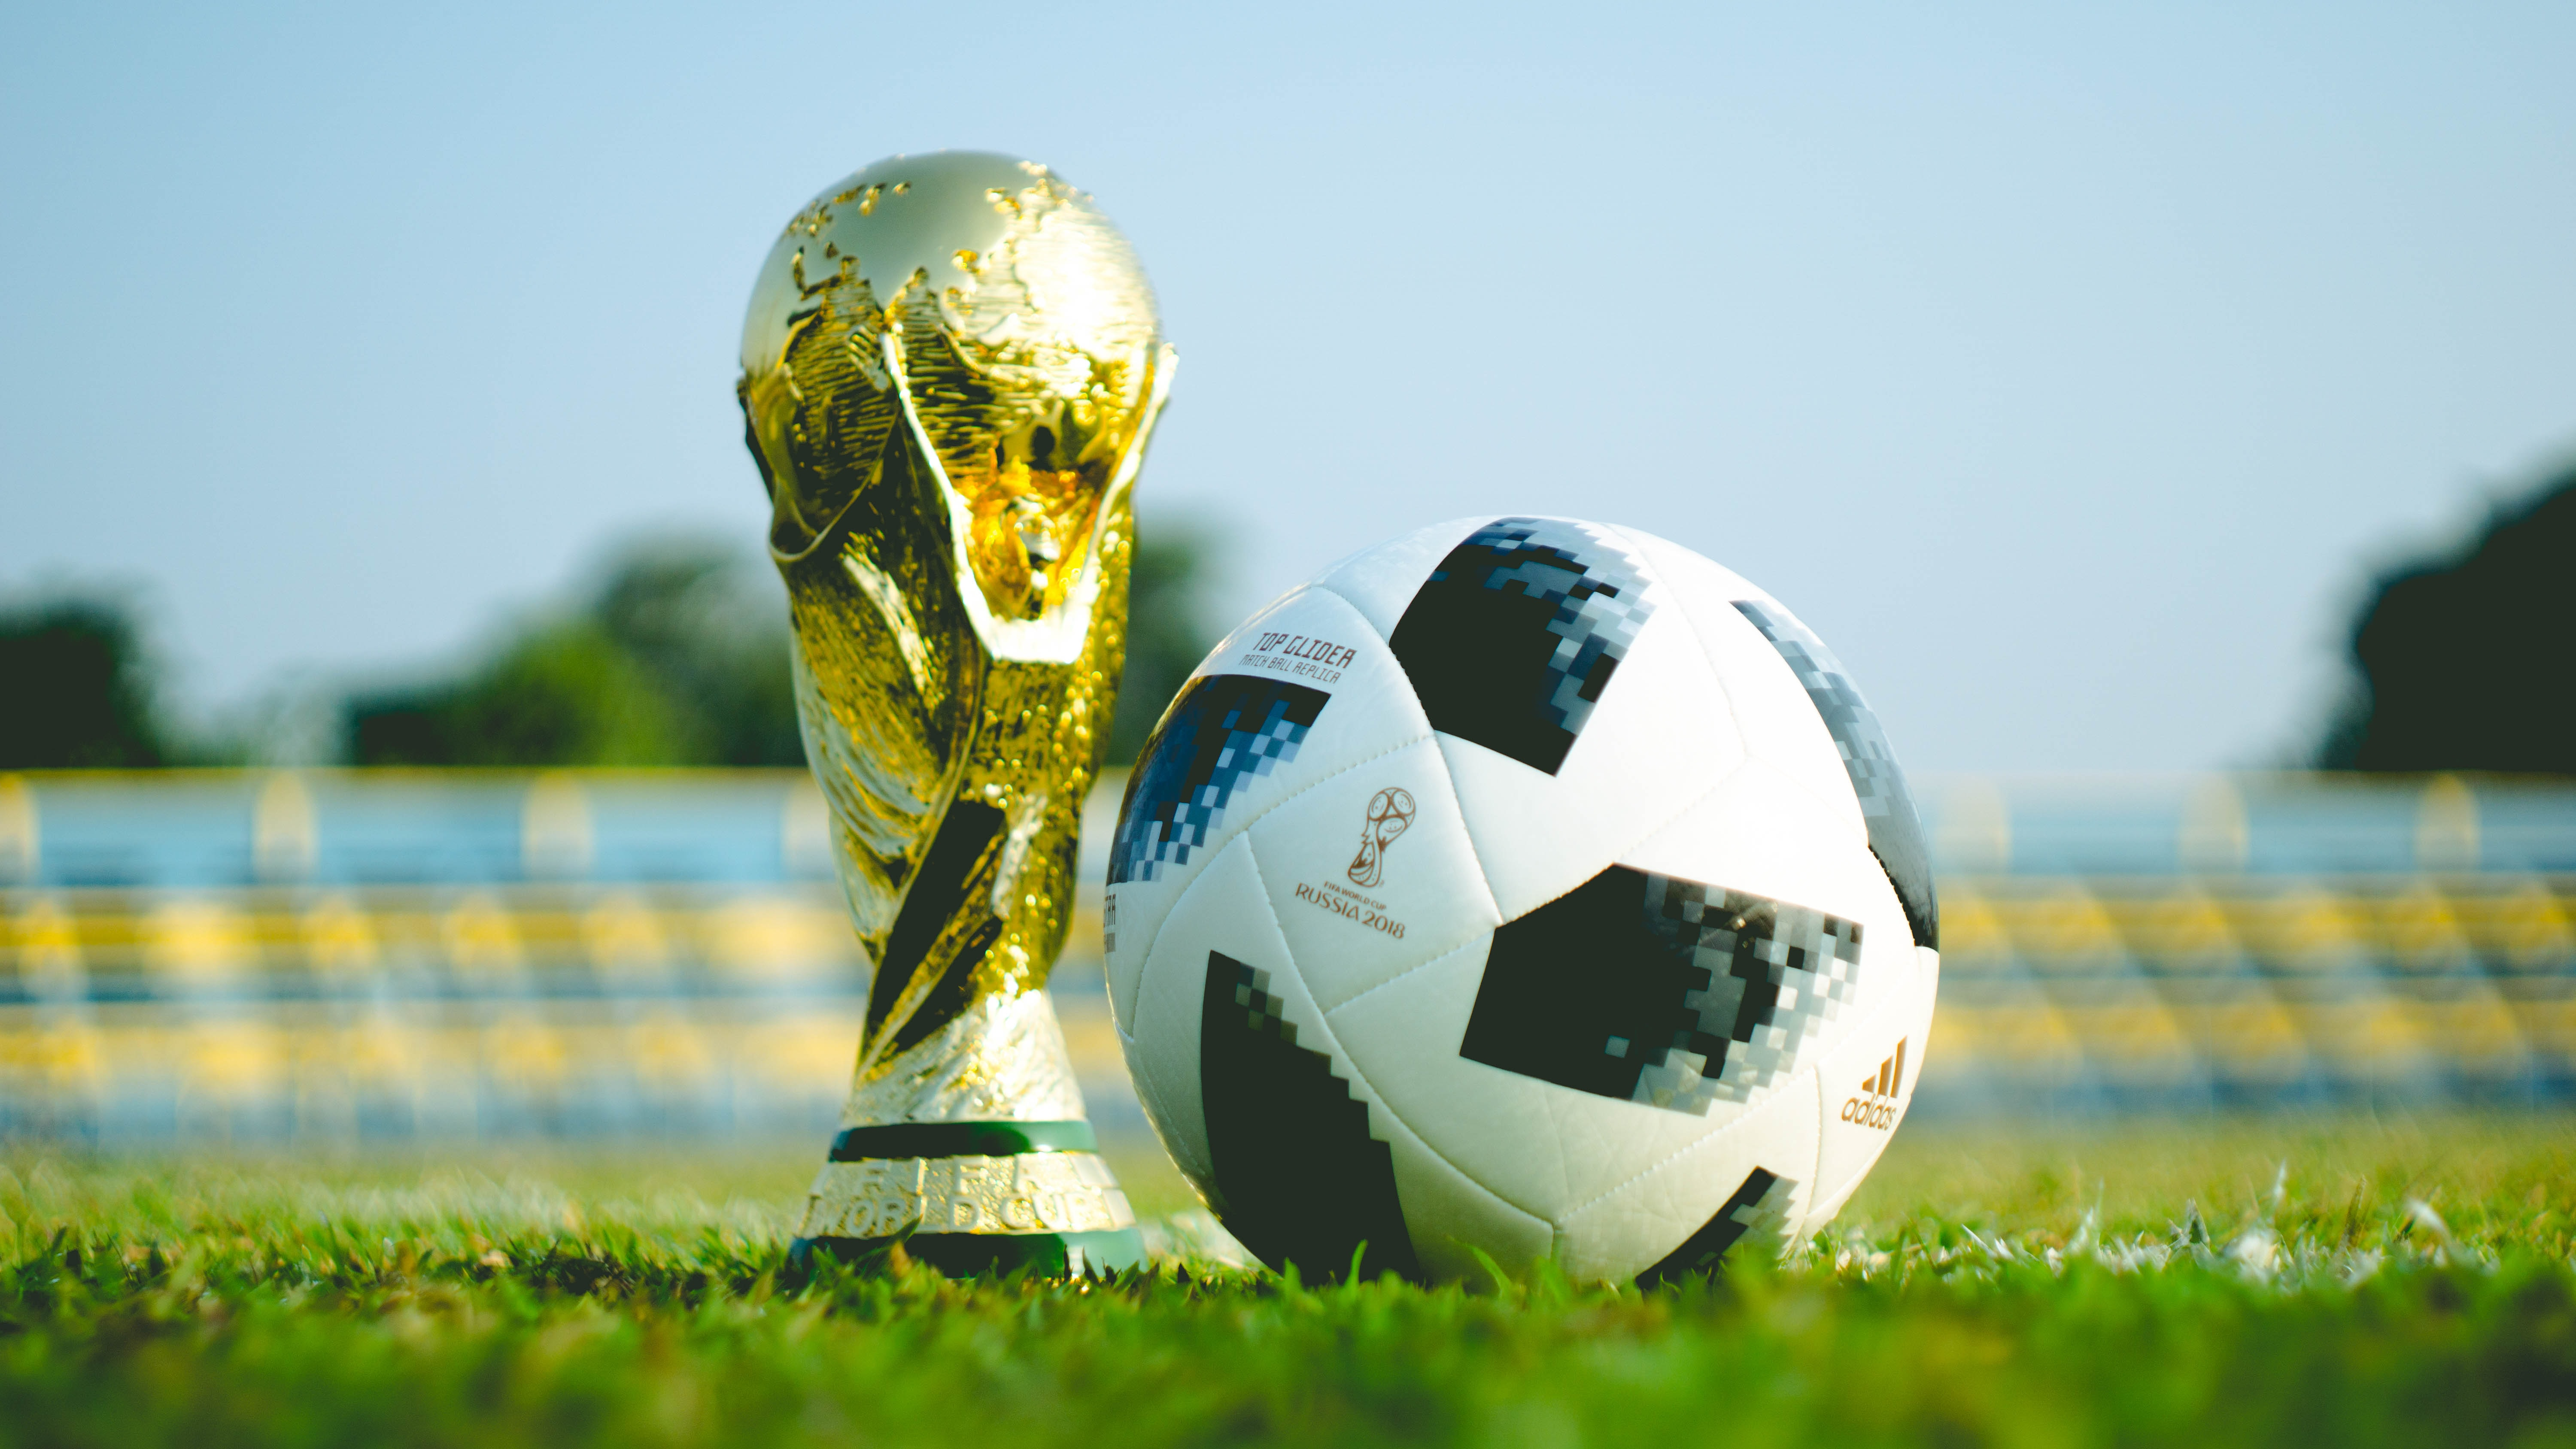 fifa world cup 2018 images